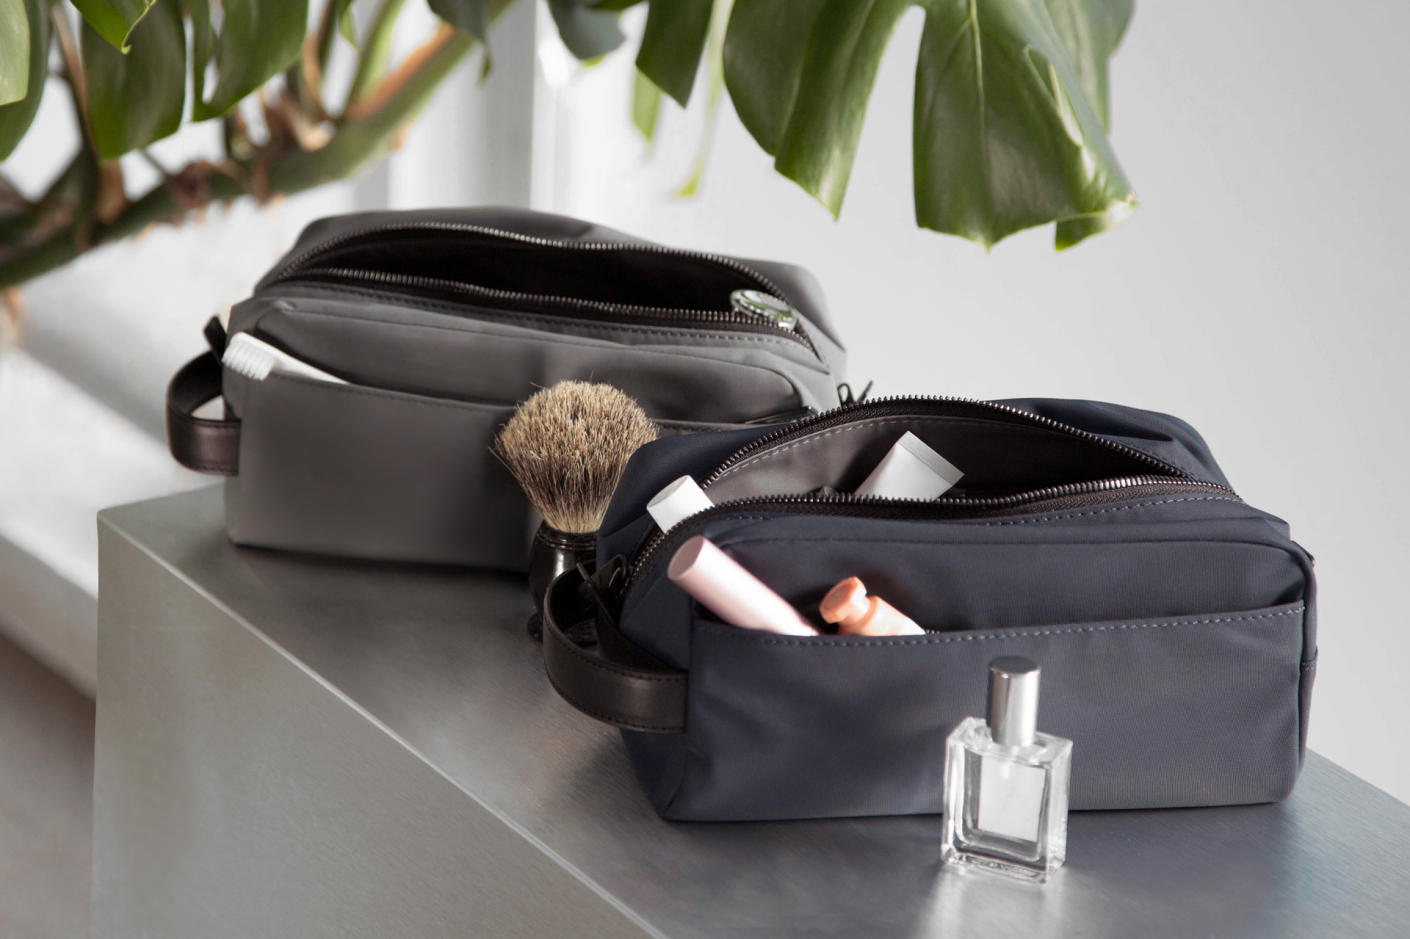 Dopp Kits in Black and Asphalt sitting on a counter with various beauty and grooming products in and around the Dopp Kits.